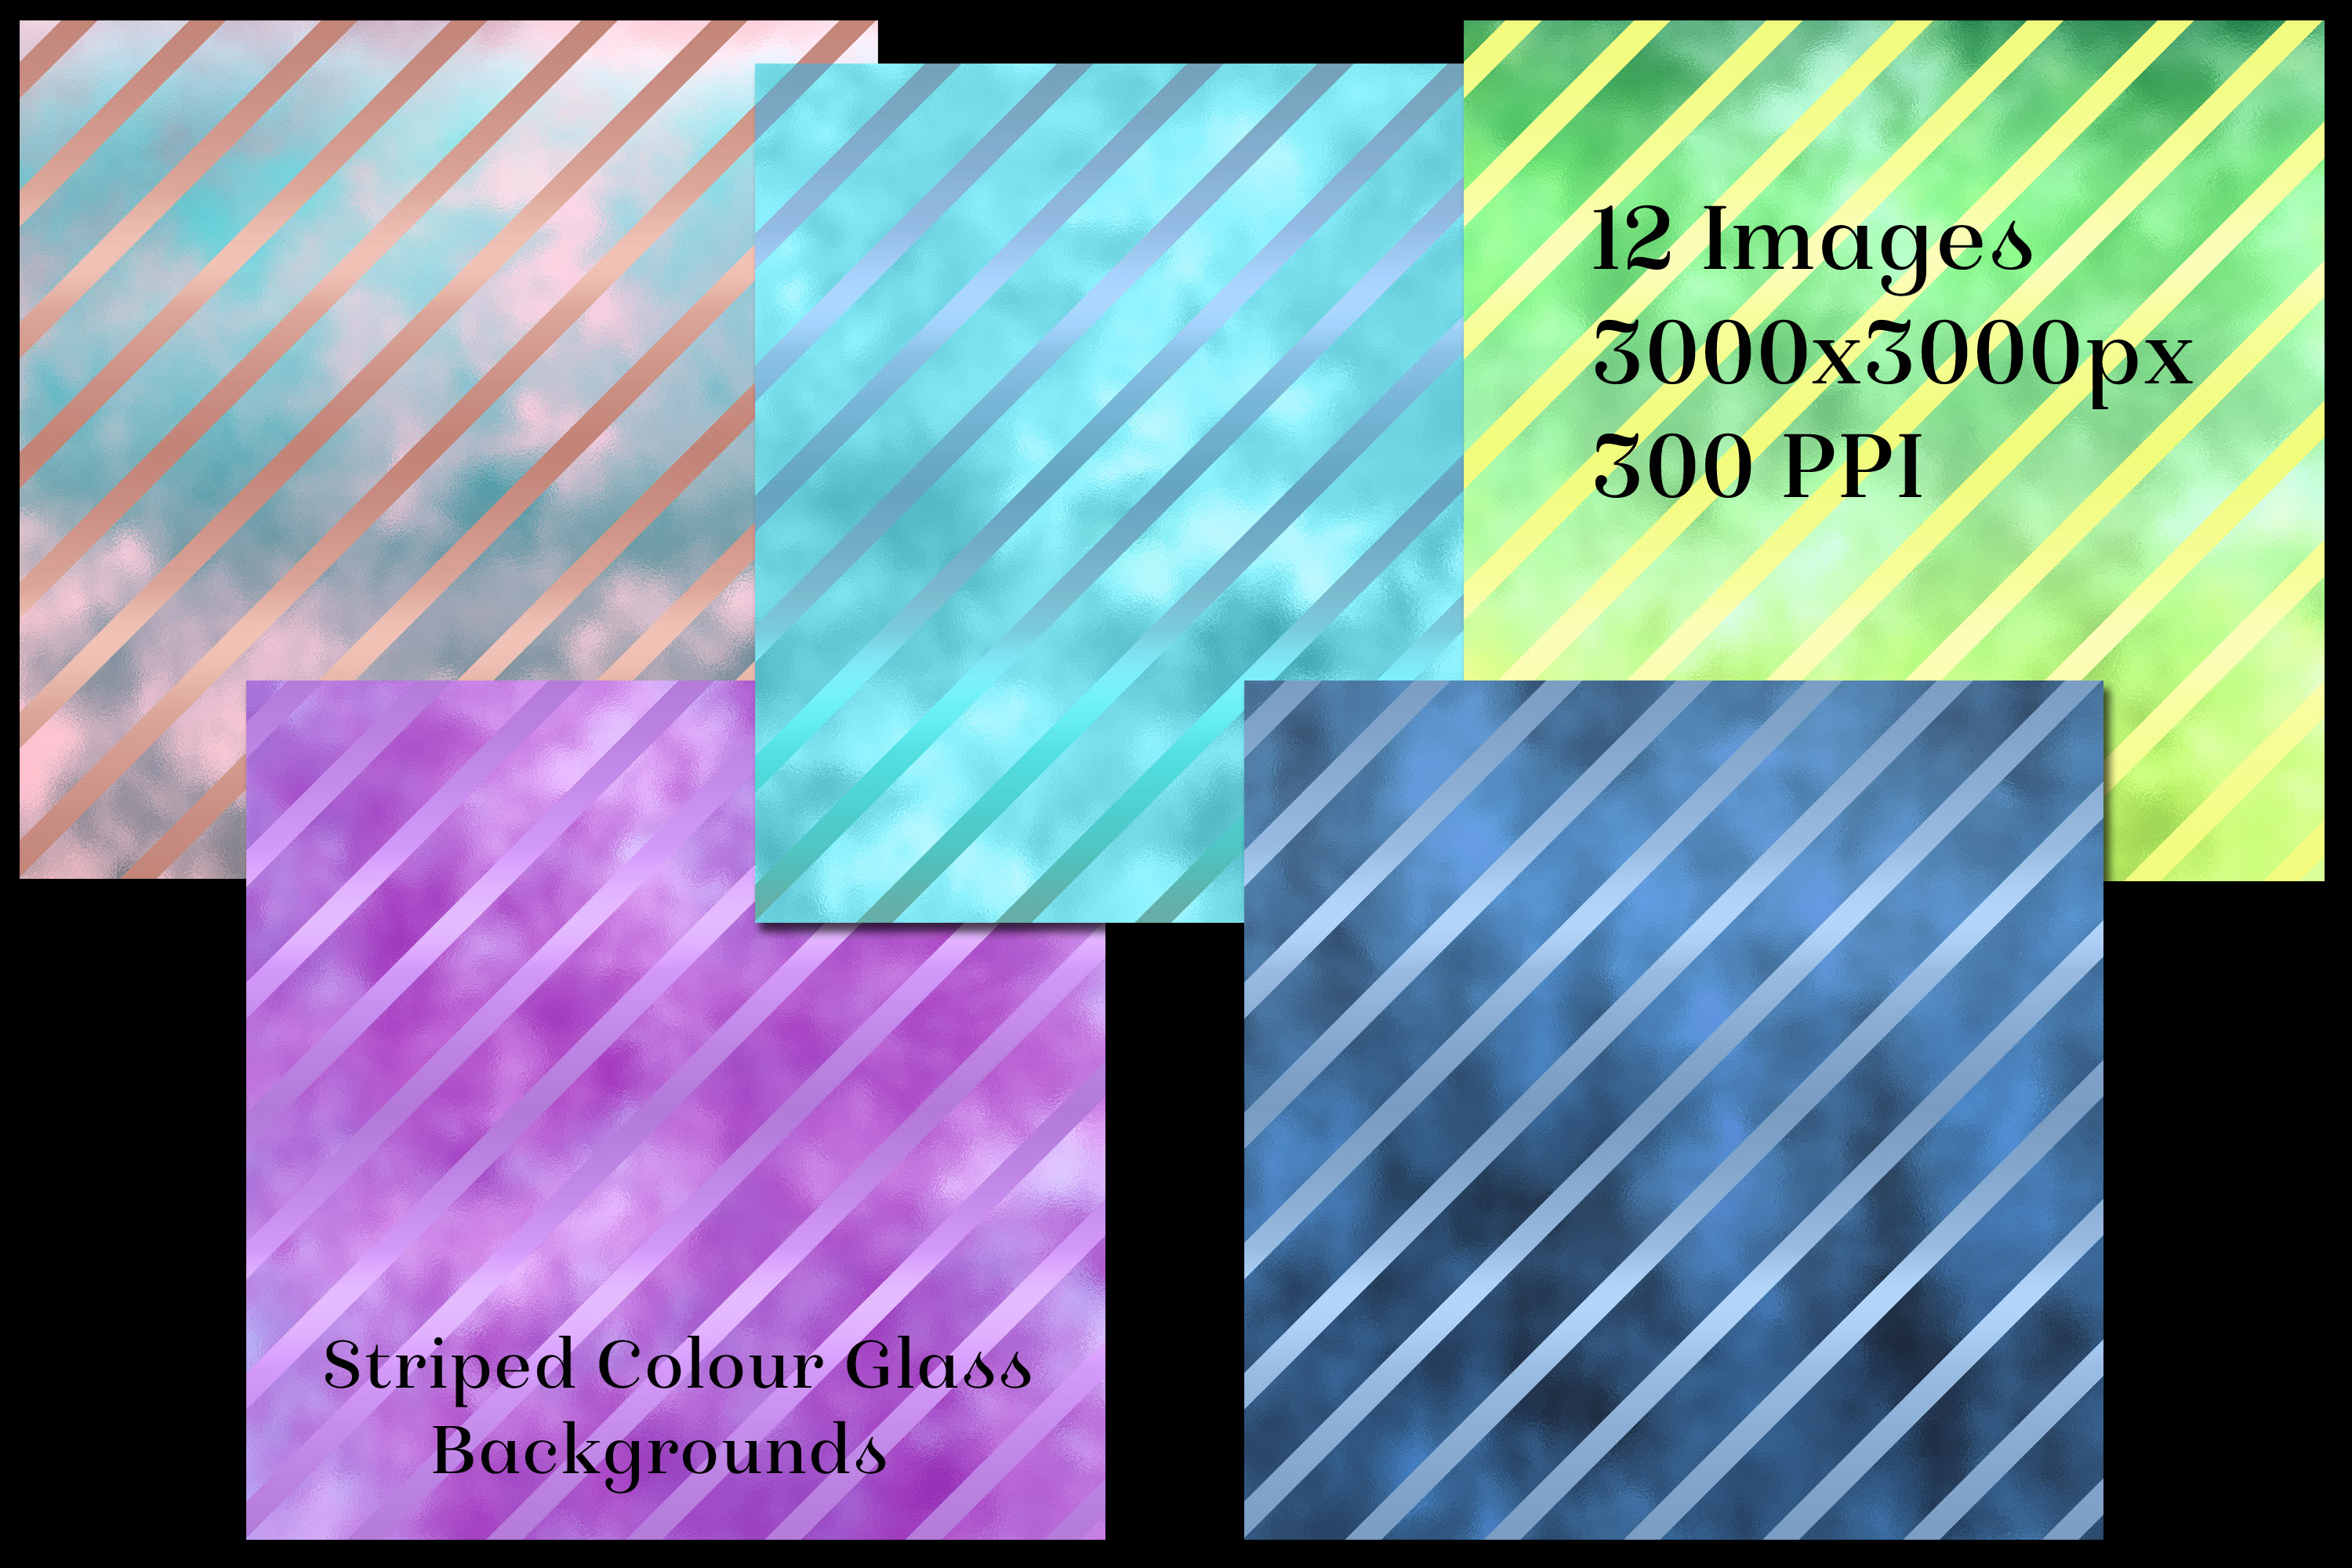 Striped Colour Glass Backgrounds - 12 Image Textures Set example image 2